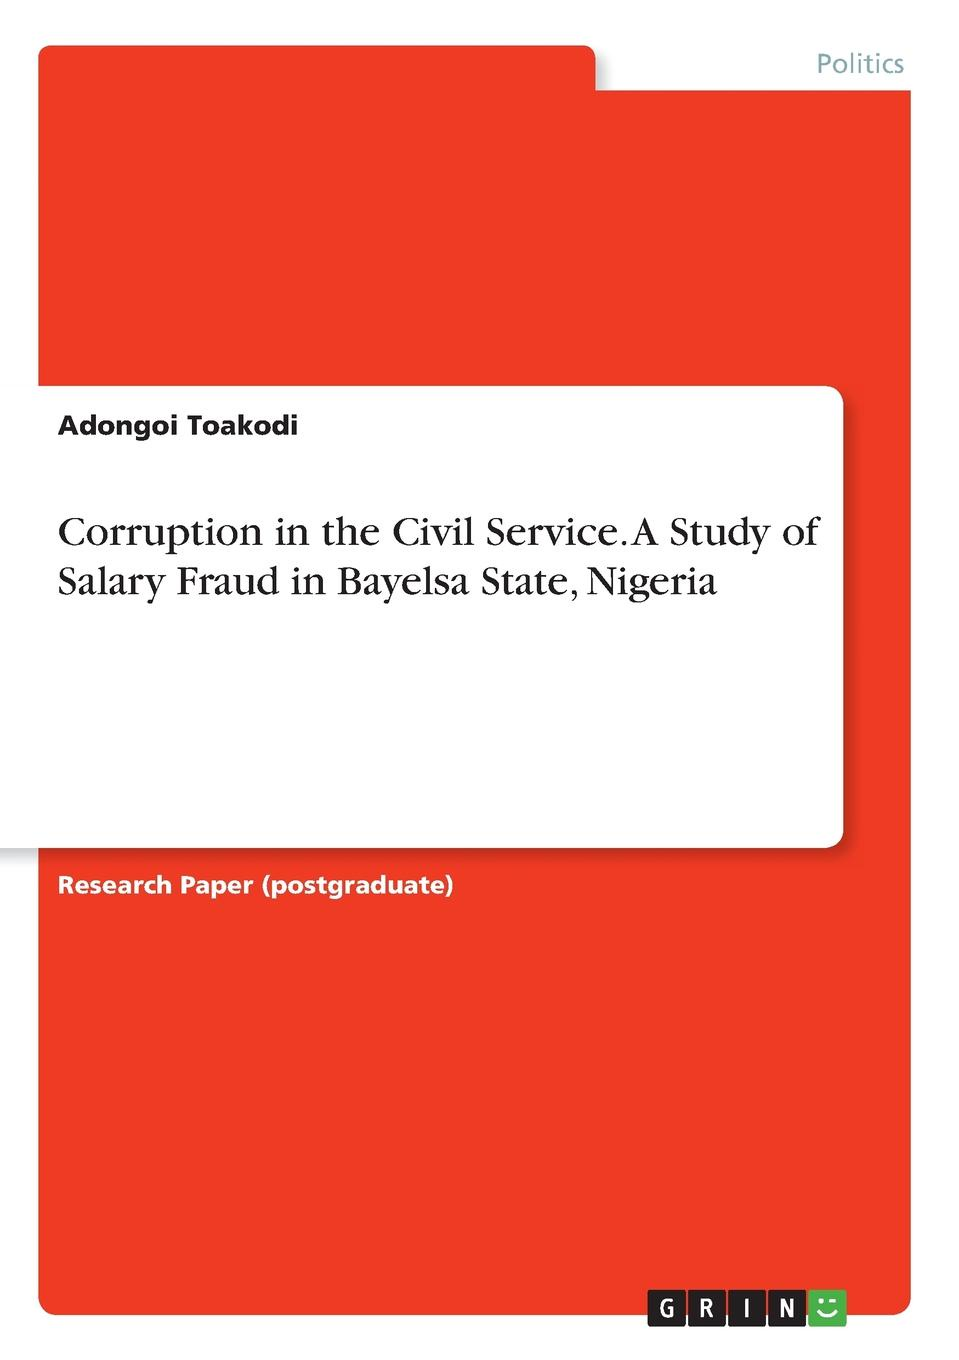 Corruption in the Civil Service. A Study of Salary Fraud in Bayelsa State, Nigeria